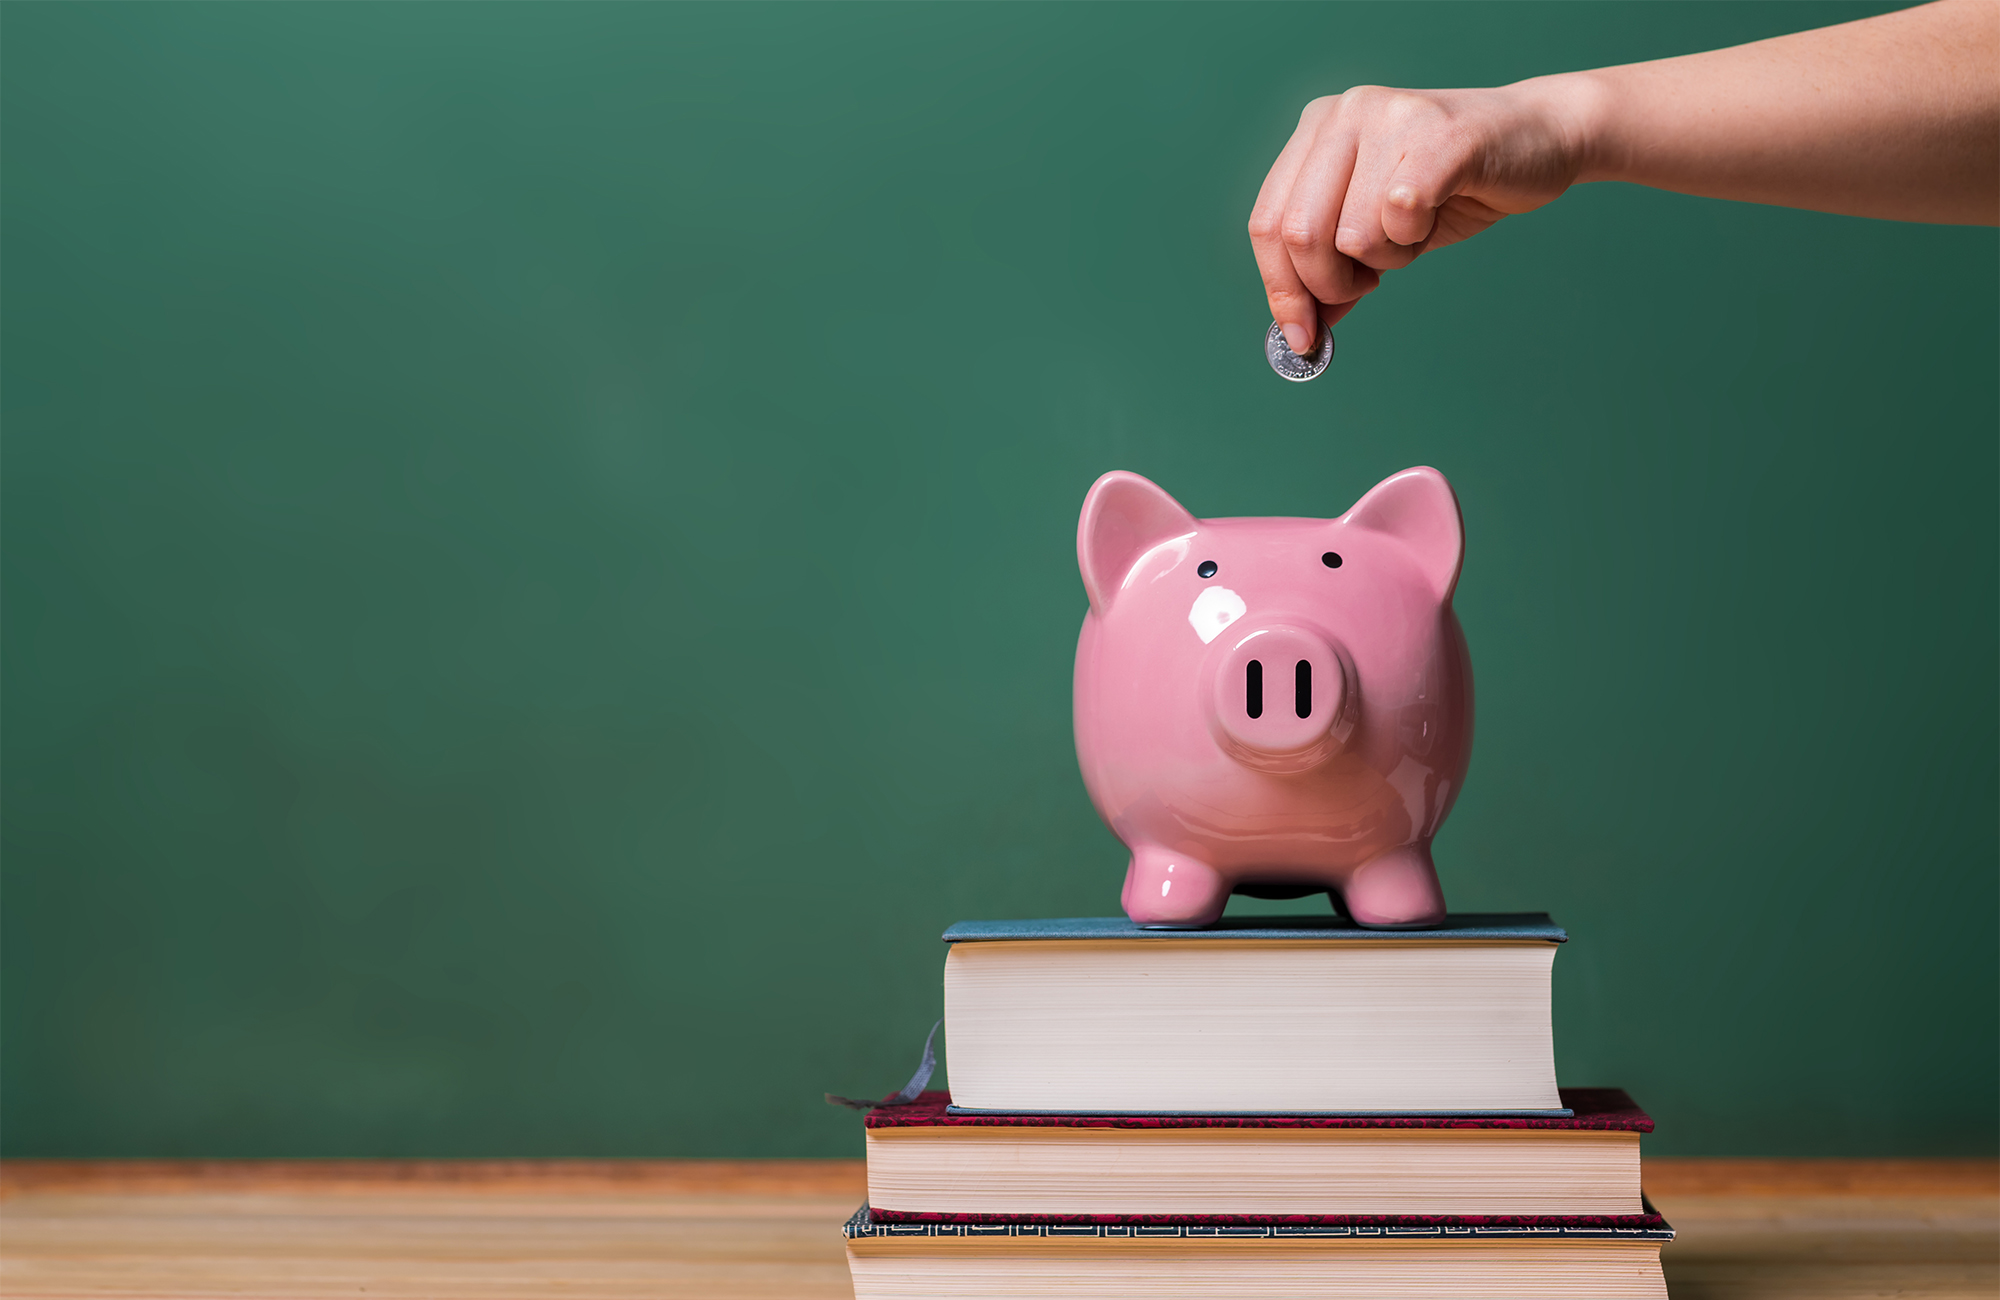 Photo of pink piggy bank on top of books with a hand depositing a coin into the bank.